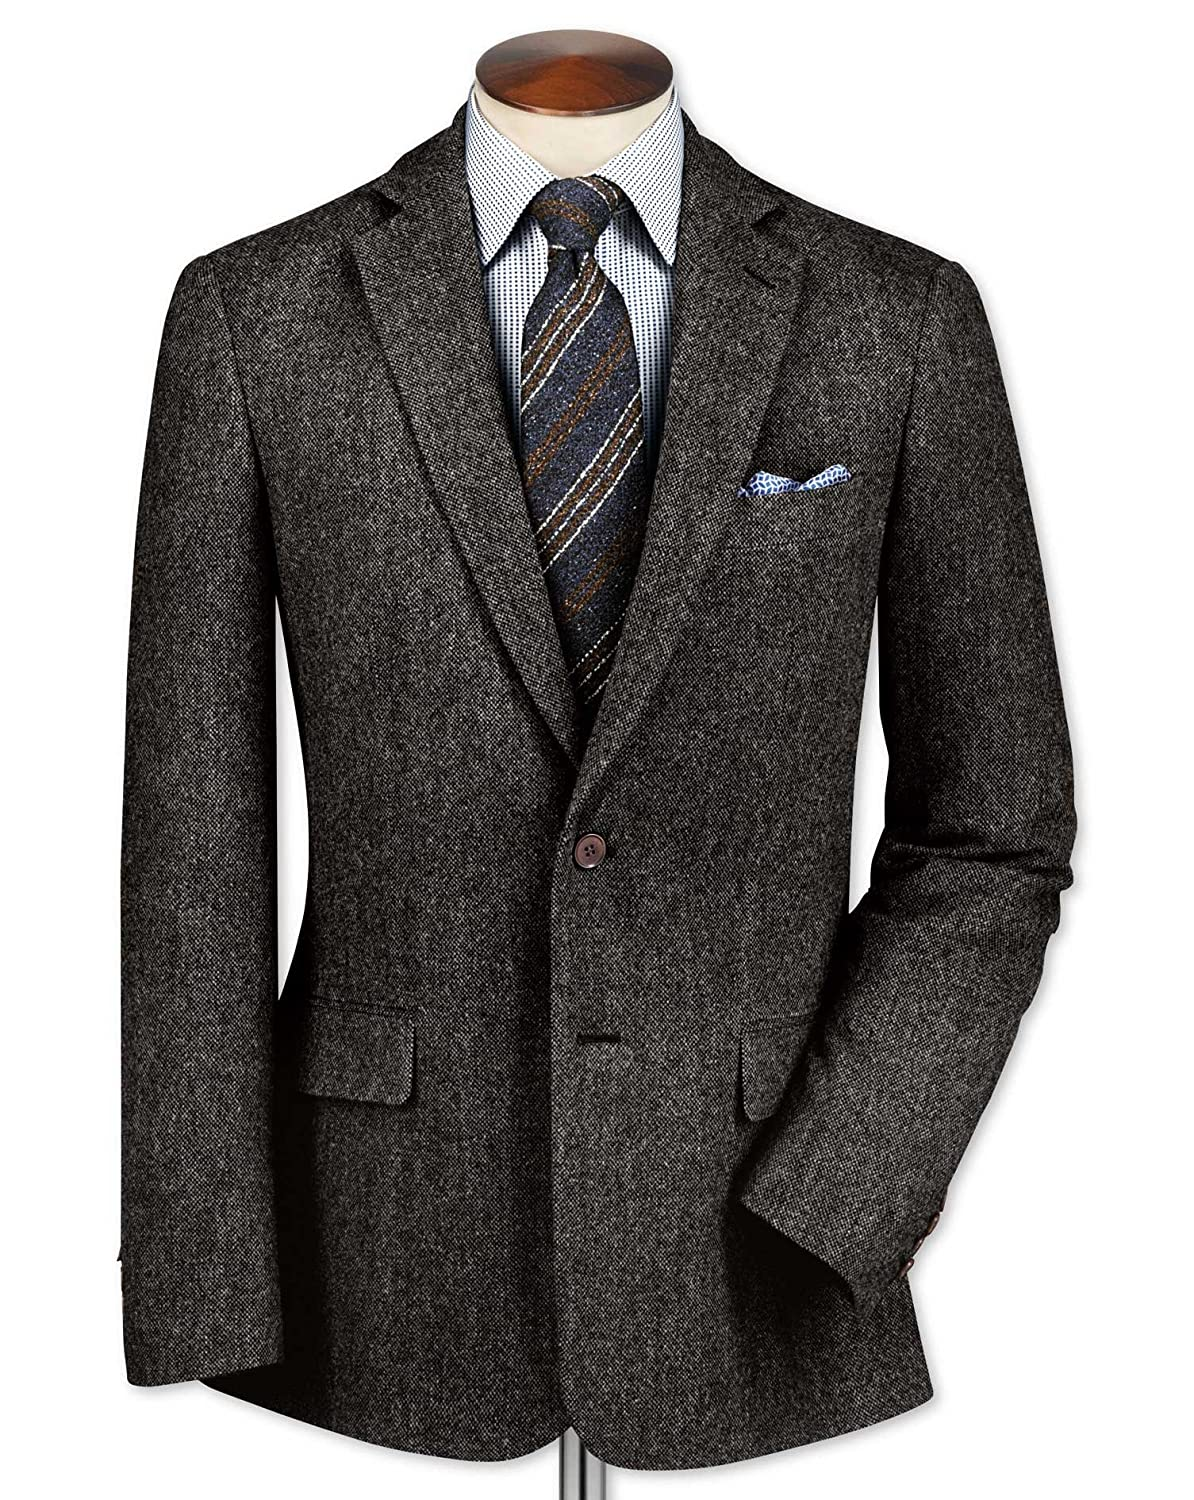 Charles Tyrwhitt Classic fit charcoal lambswool hopsack jacket - Size: 38 - Color: GREY